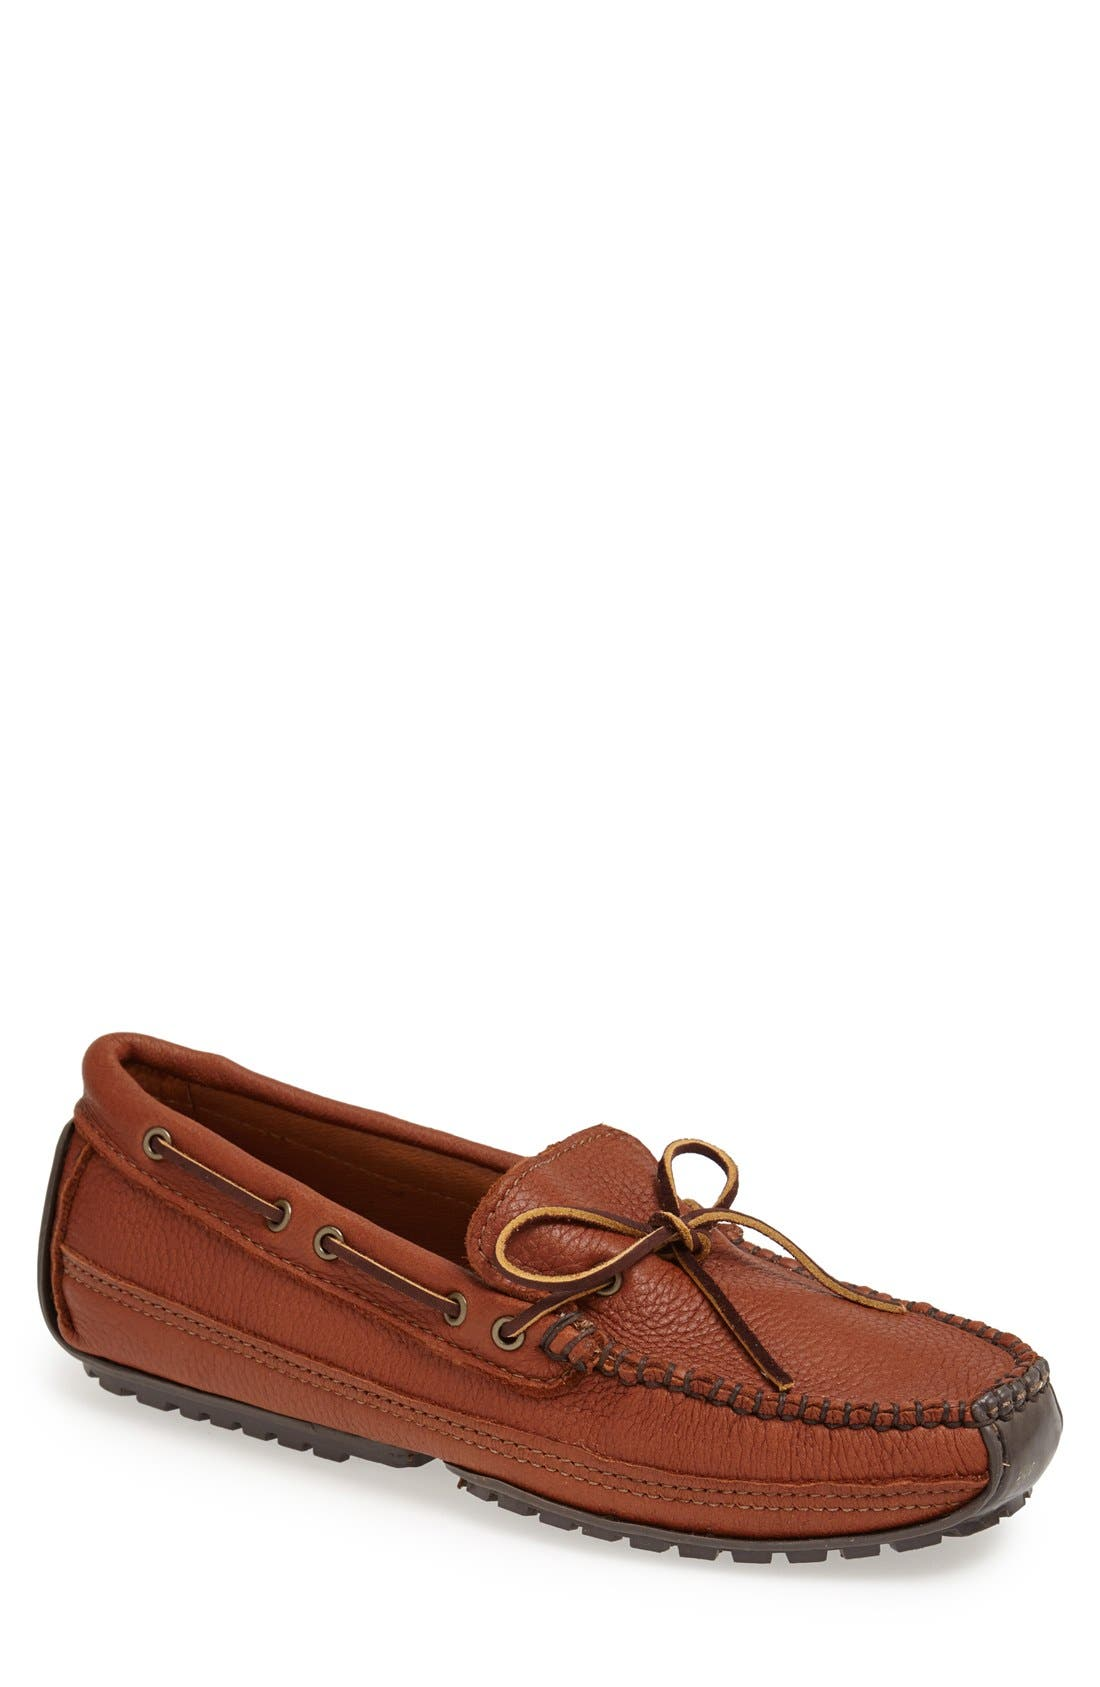 Alternate Image 1 Selected - Minnetonka Moosehide Moccasin (Men)